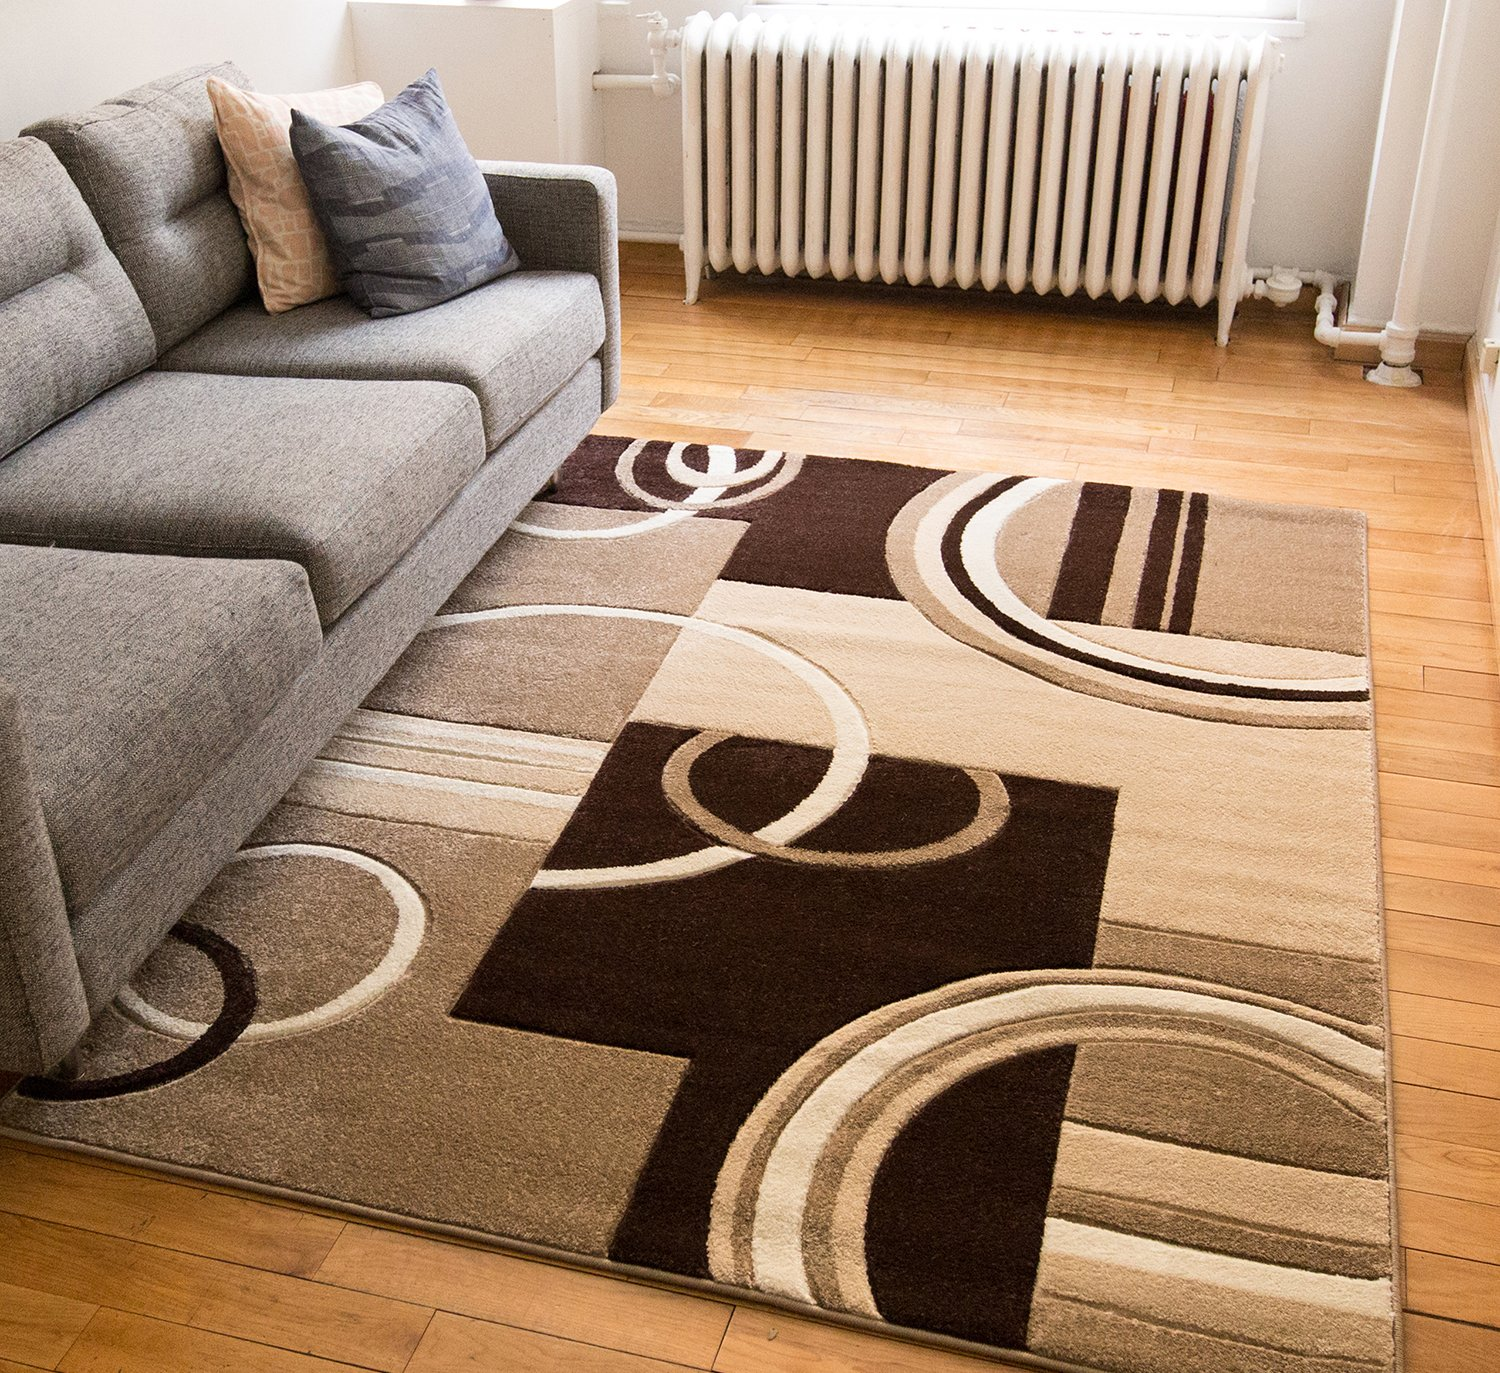 Echo Shapes & Circles Ivory / Beige Brown Modern Geometric Comfy Casual Hand Carved Area Rug 8x10 8x11 ( 7'10'' x 9'10'' ) Easy Clean Stain Resistant Abstract Contemporary Thick Soft Plush Living Room